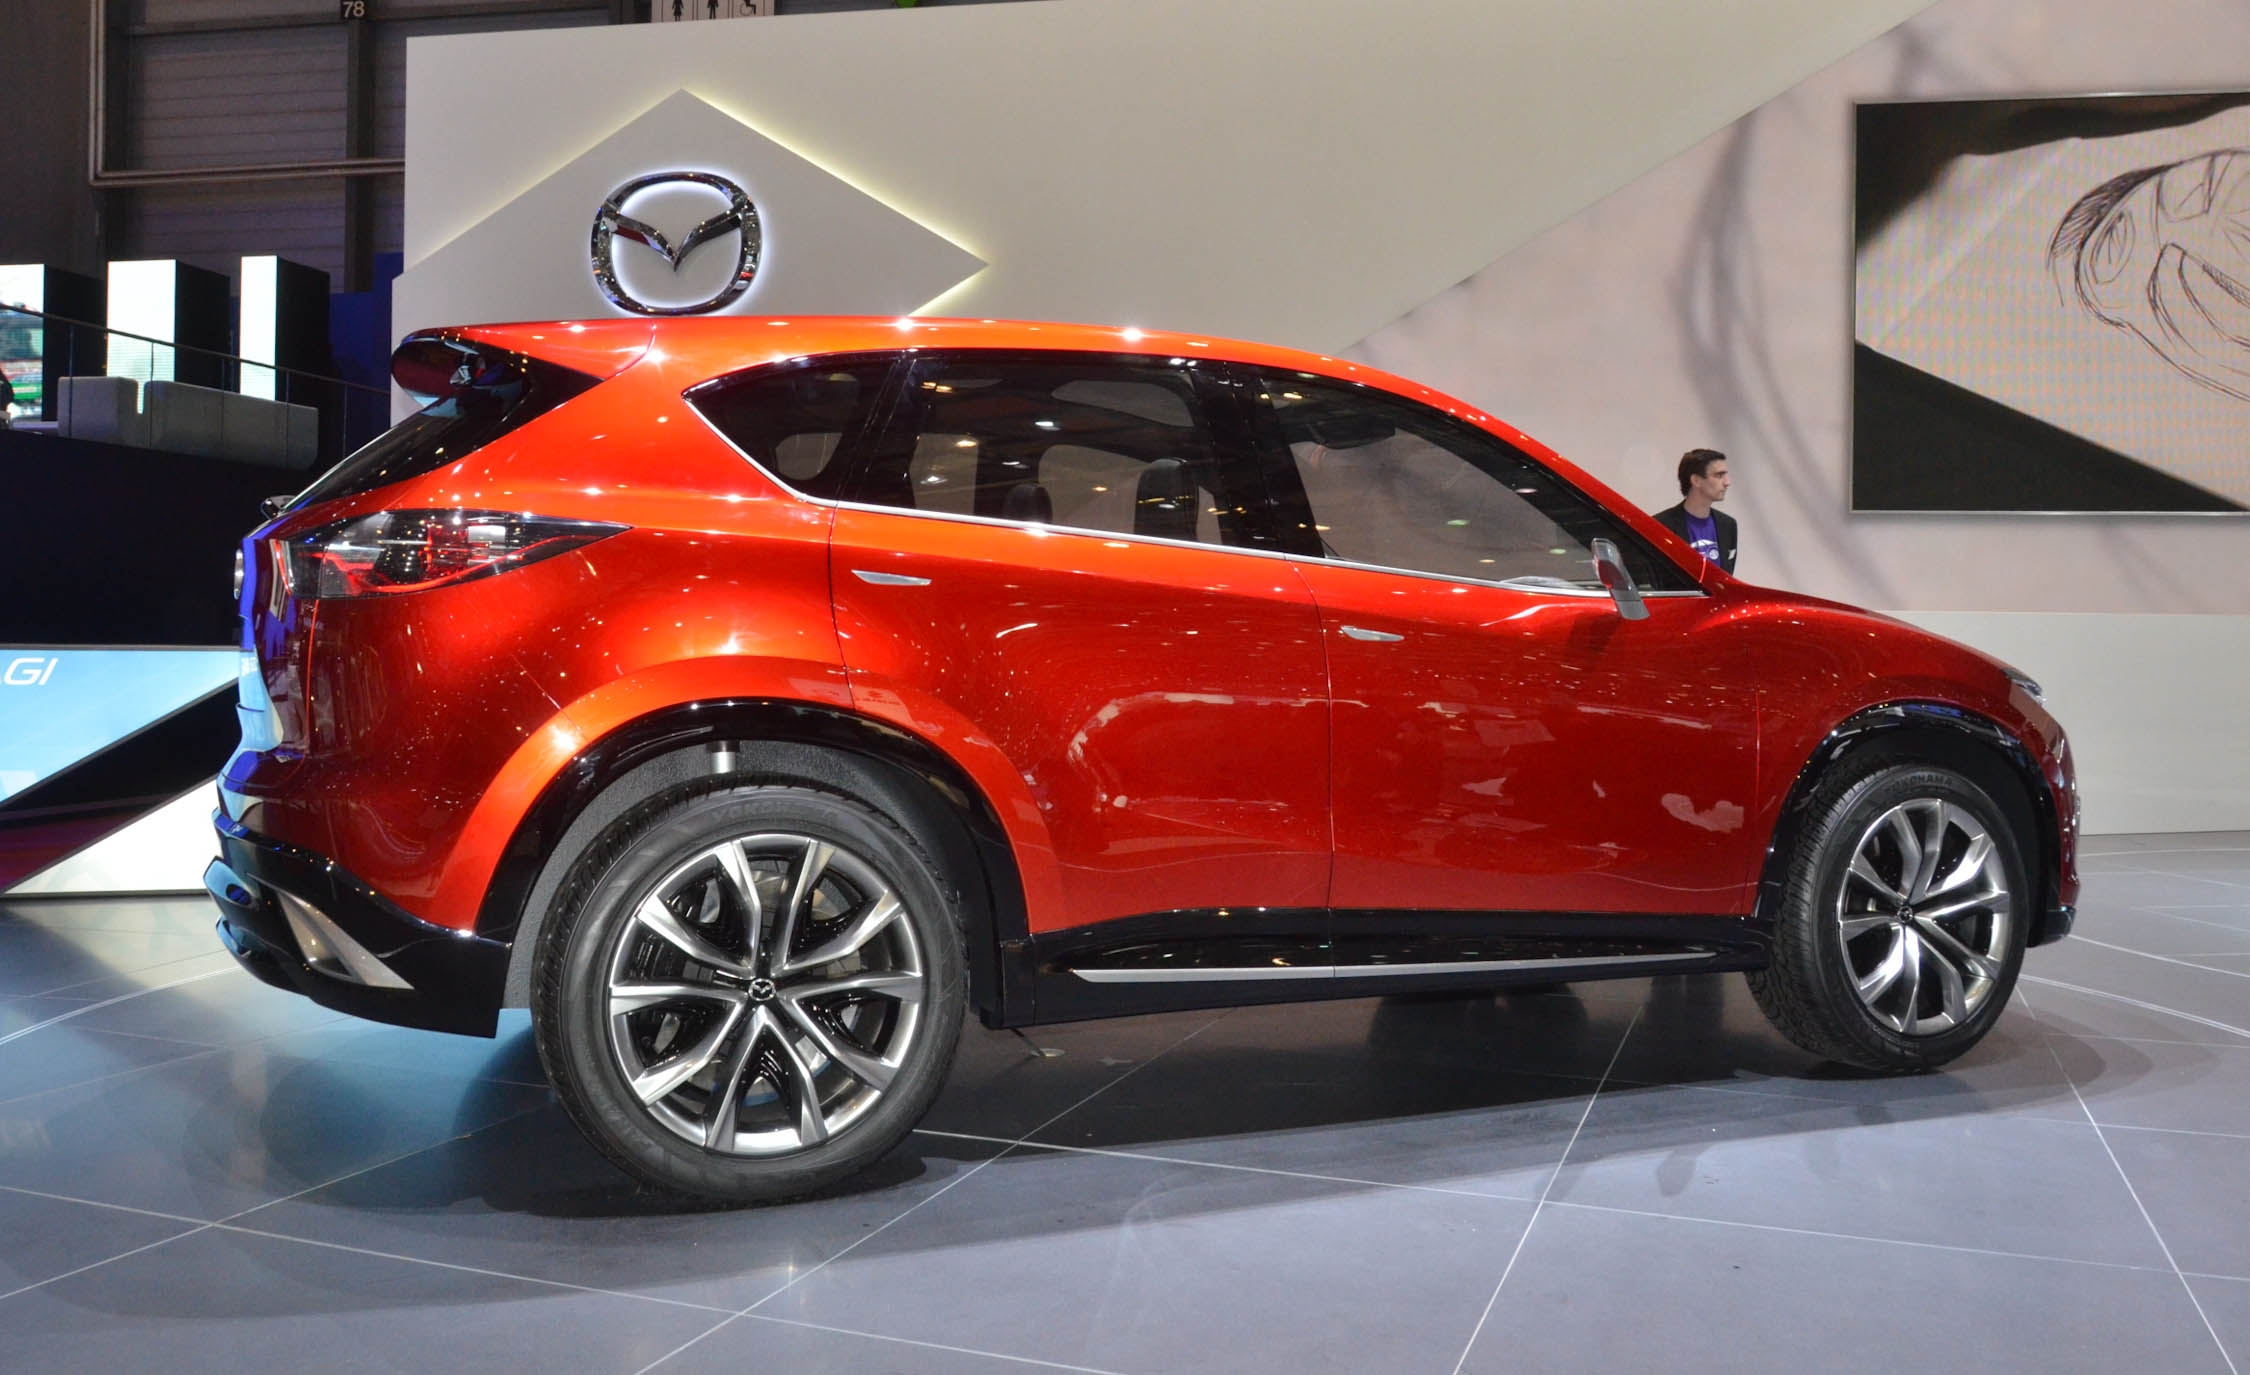 2016 Mazda Cx 5 Pictures Information And Specs Well 2002 Tribute Wiring Diagram On 2014 3 8